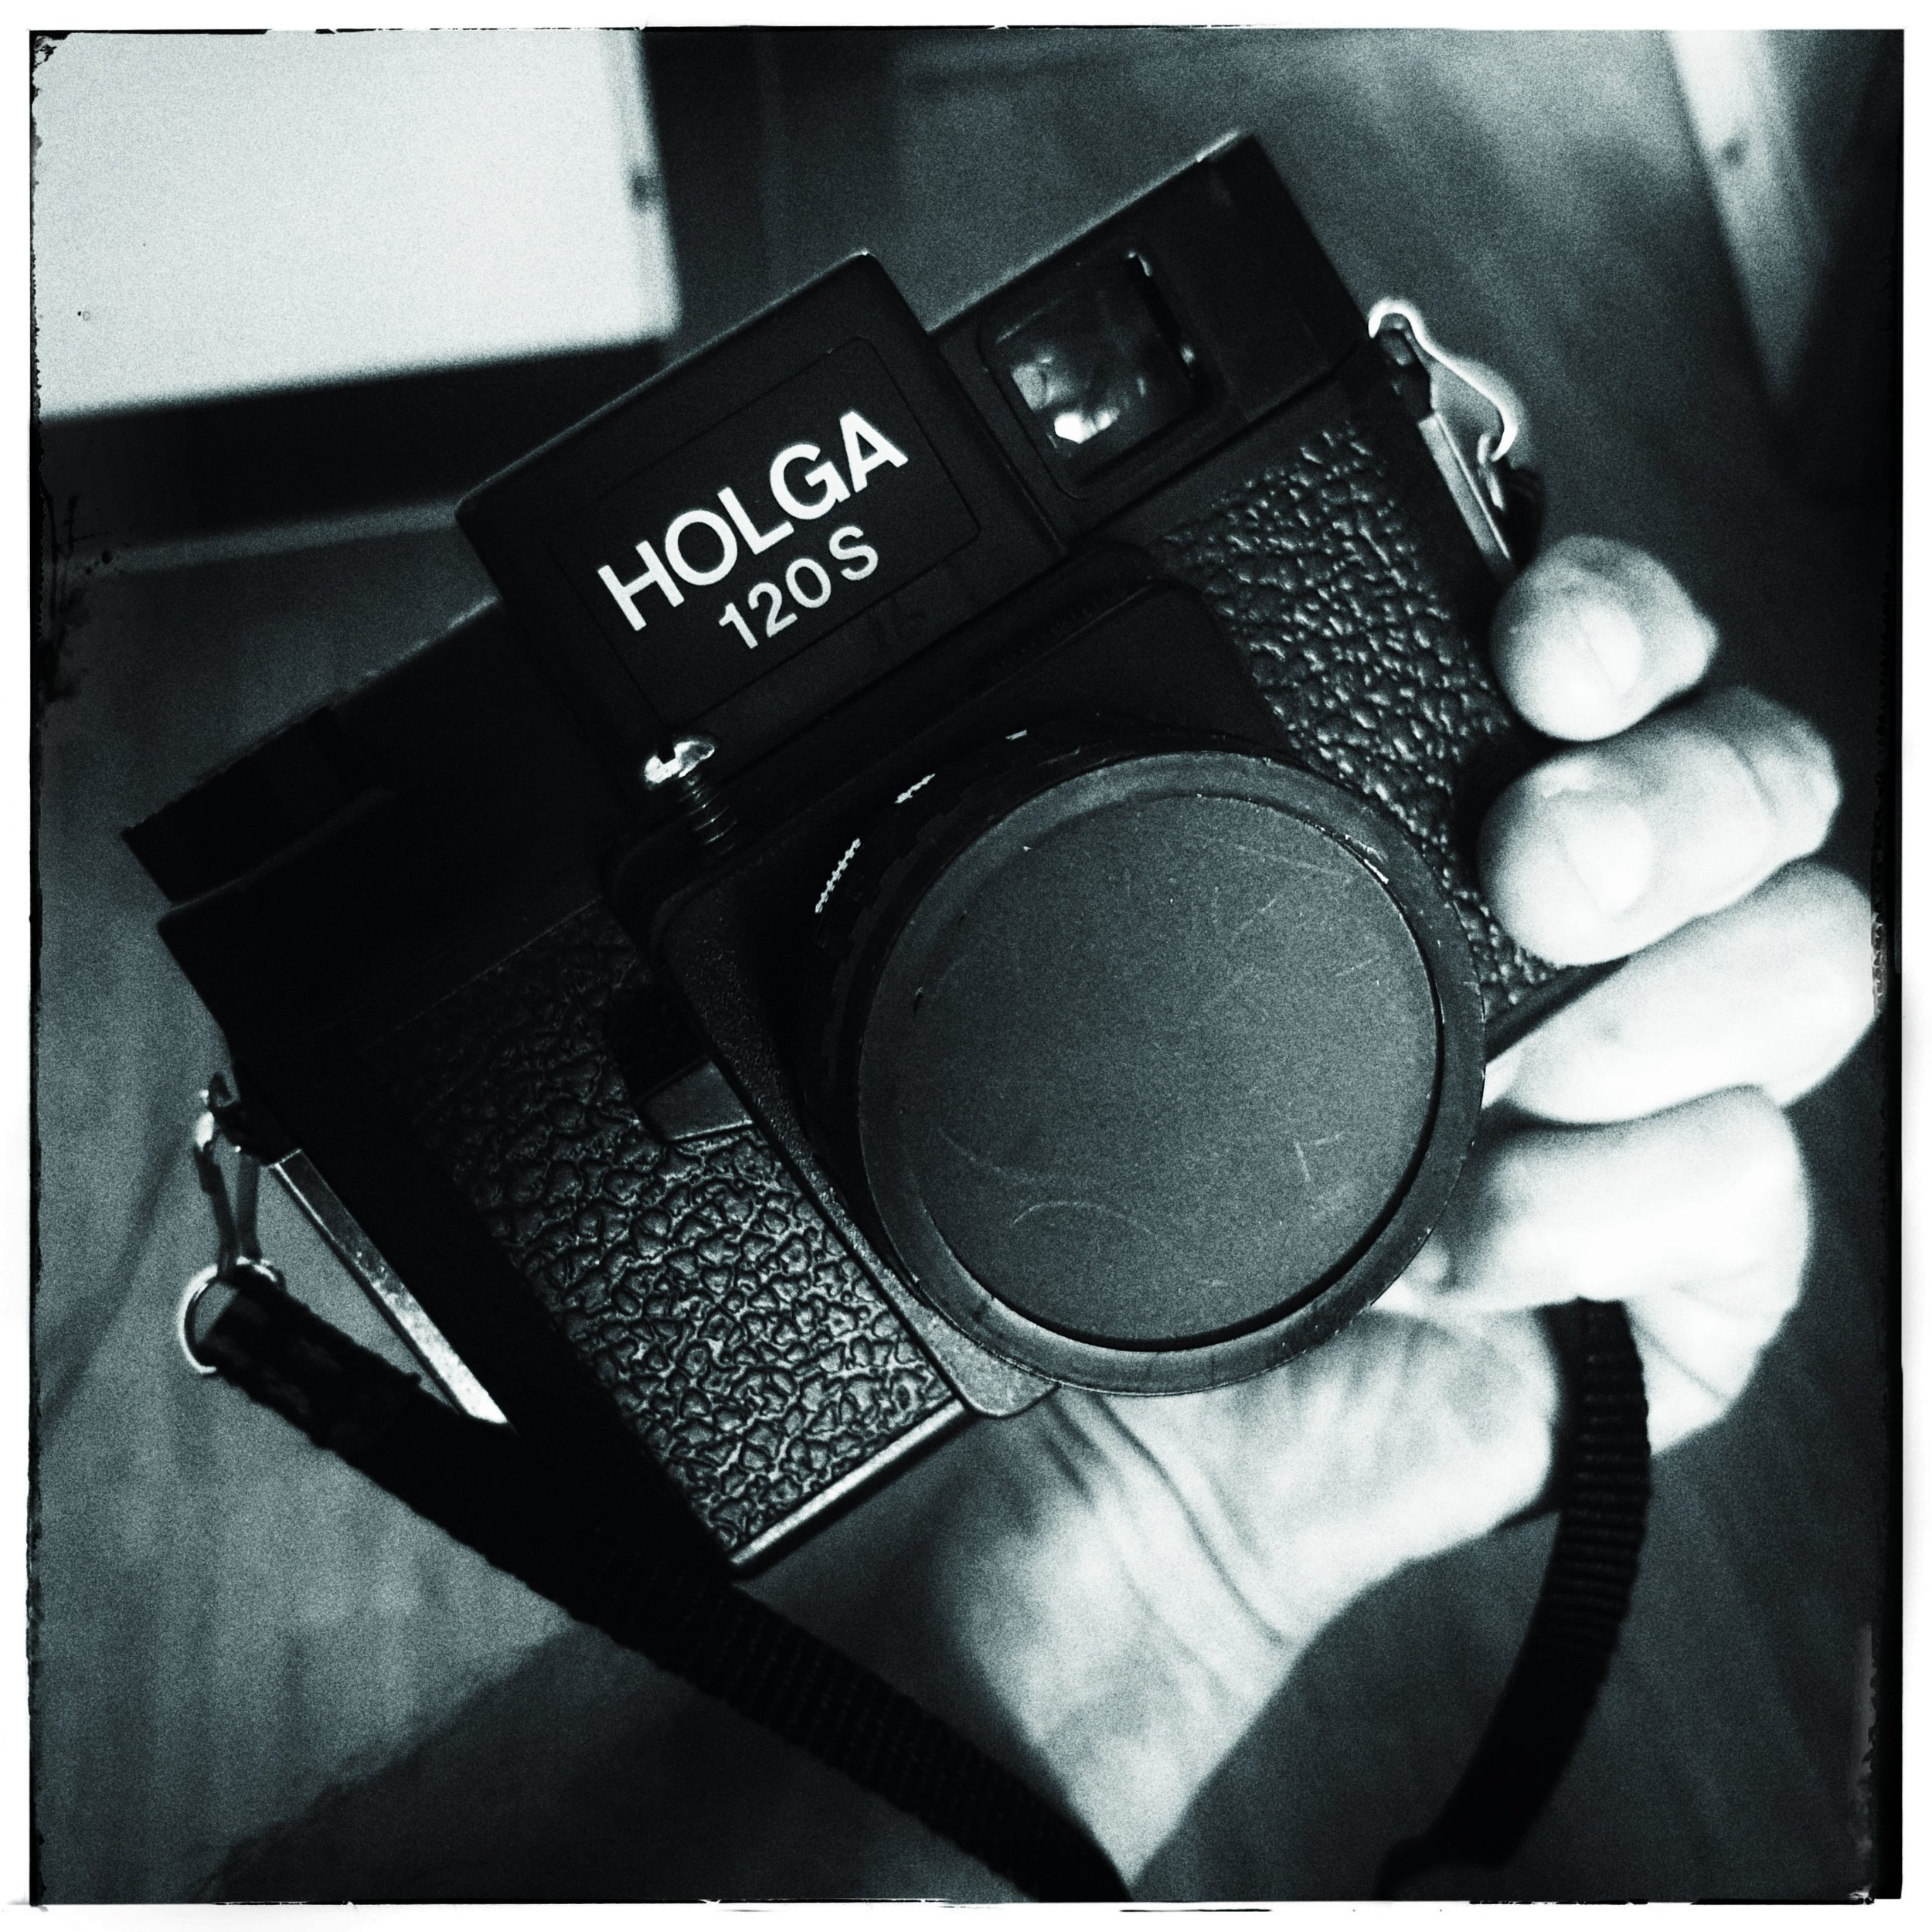 Day 145 - May 25: New photo toy on loan